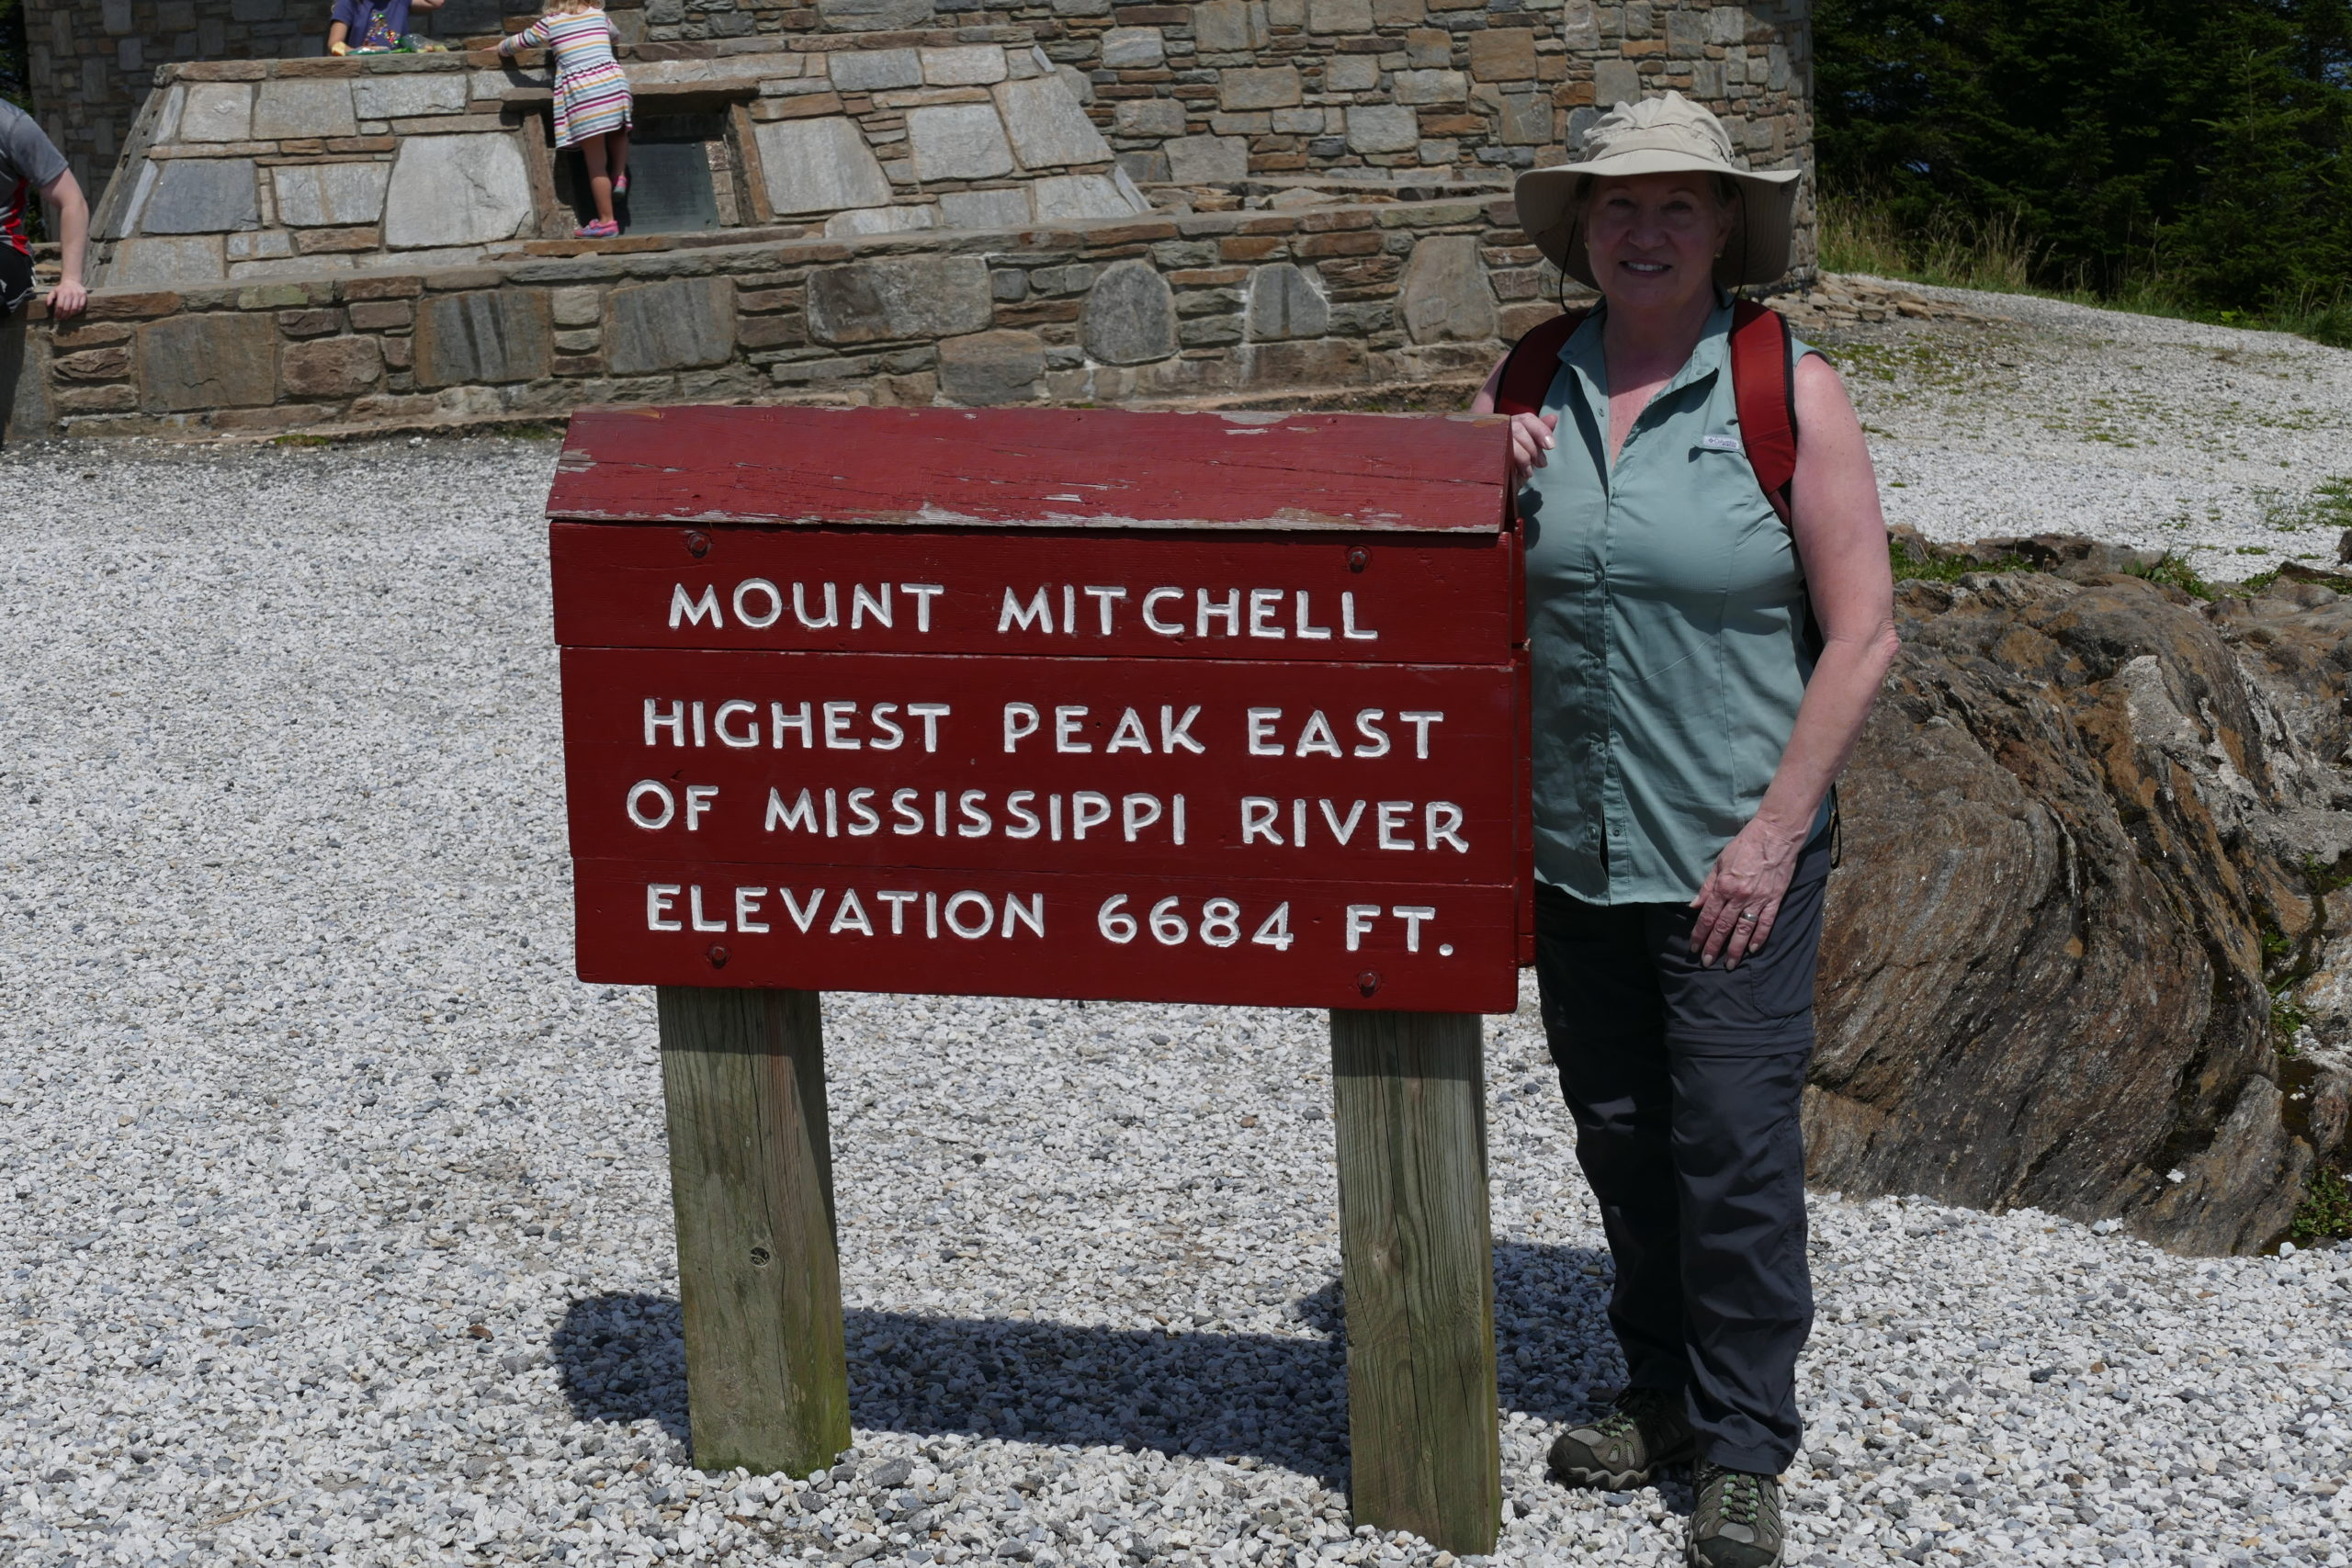 Andrea standing next to Mt Mitchell elevation sign